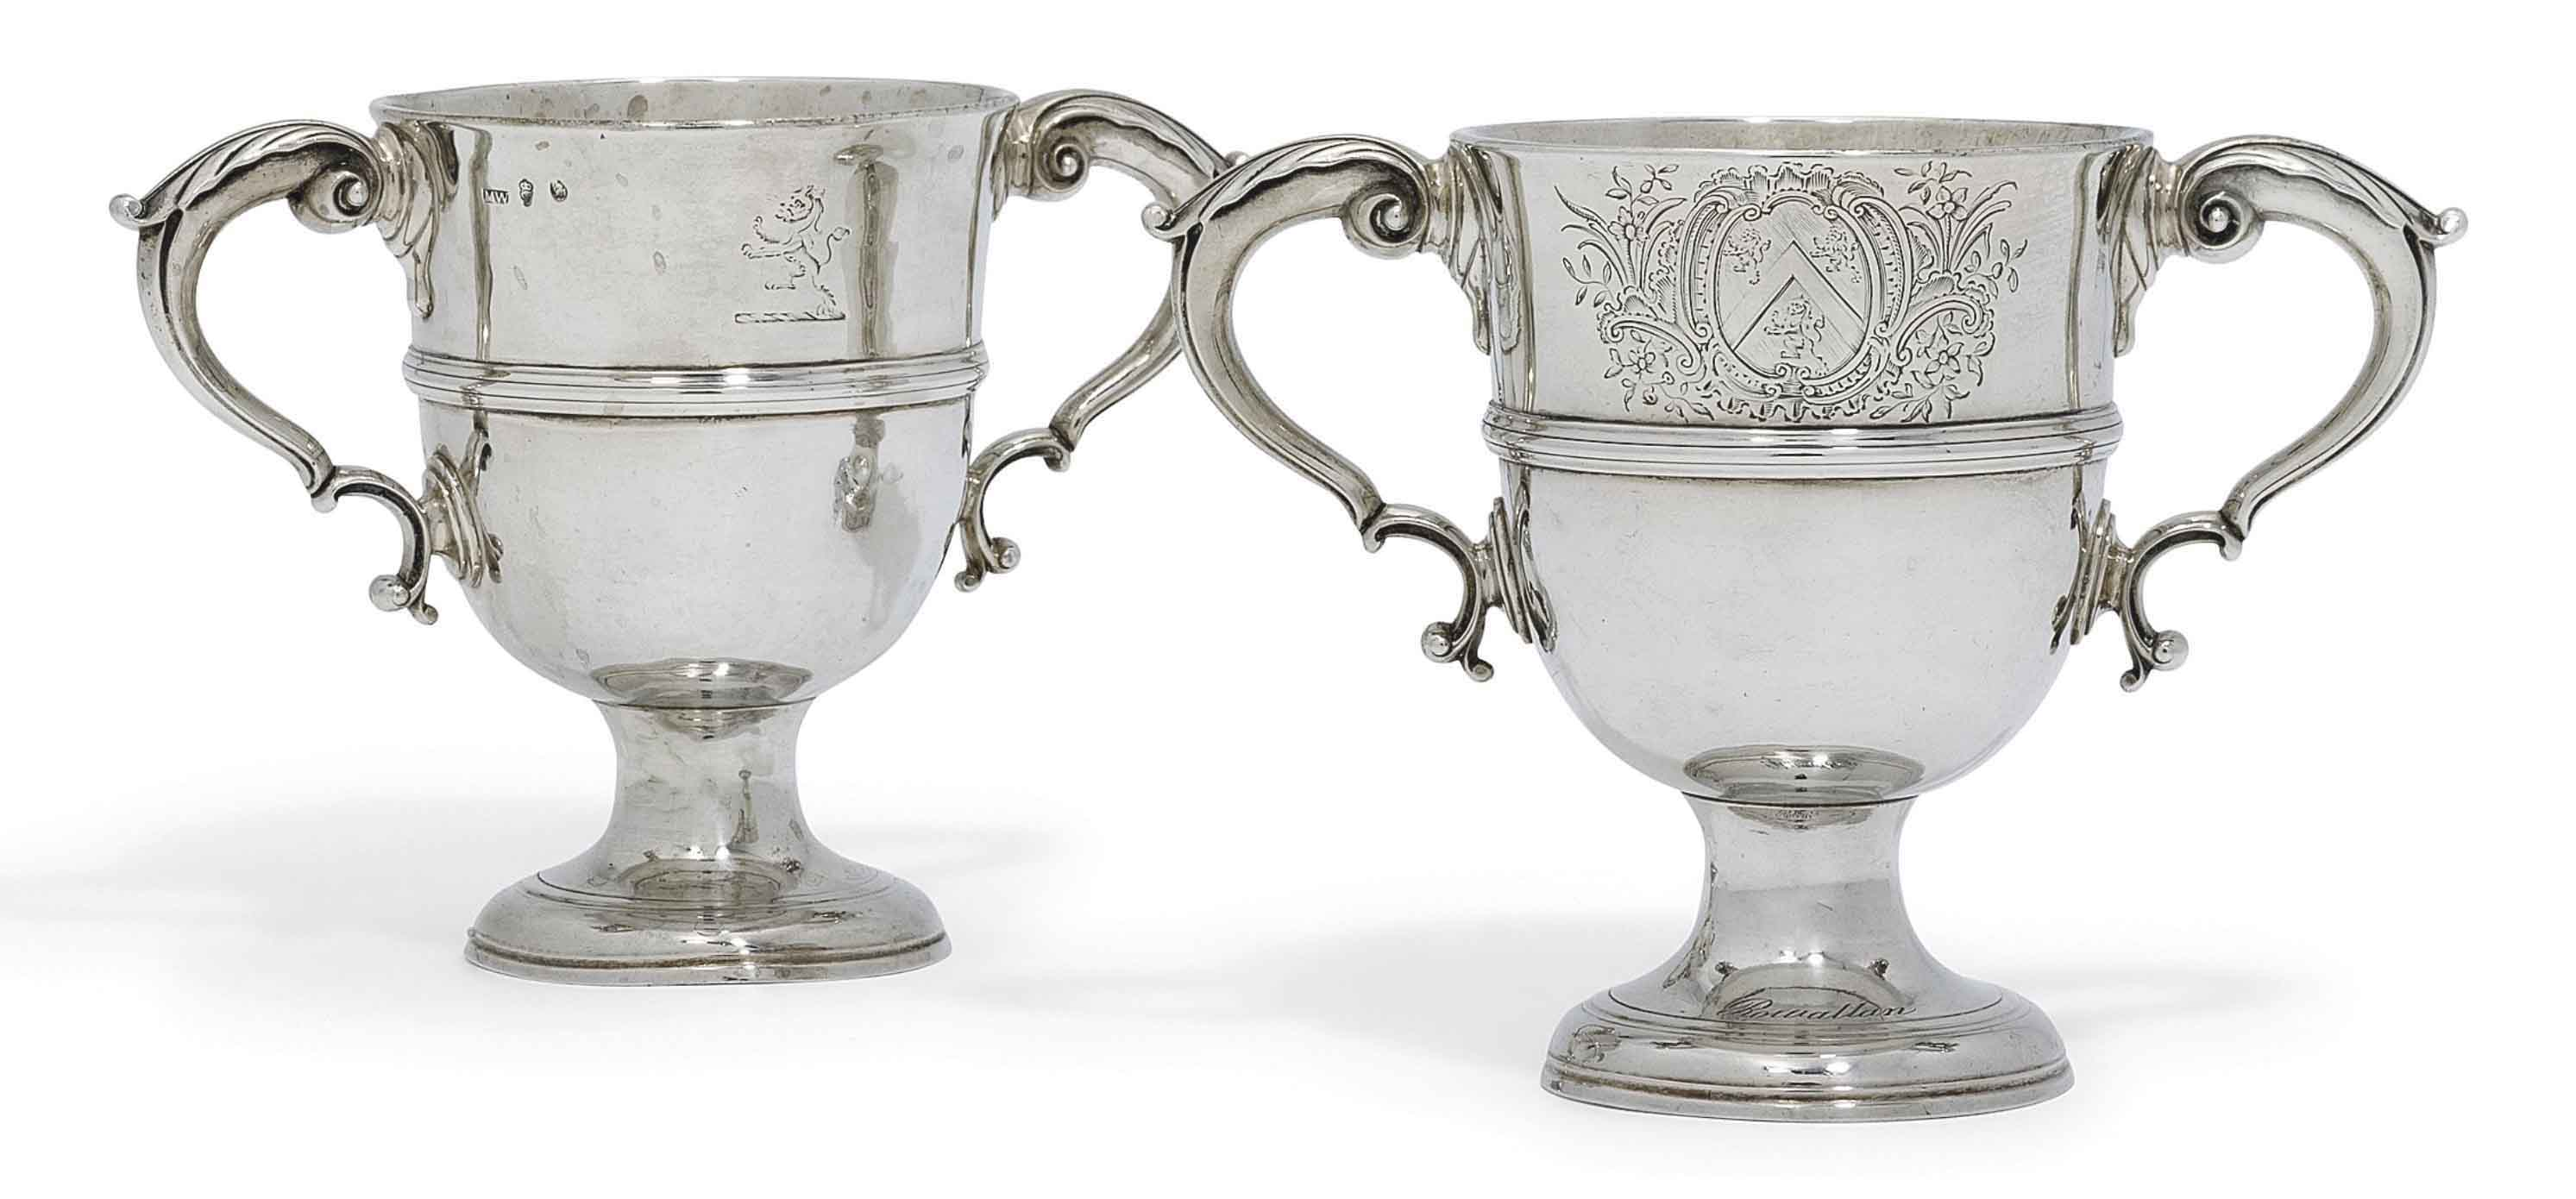 A PAIR OF GEORGE III IRISH SILVER CUPS